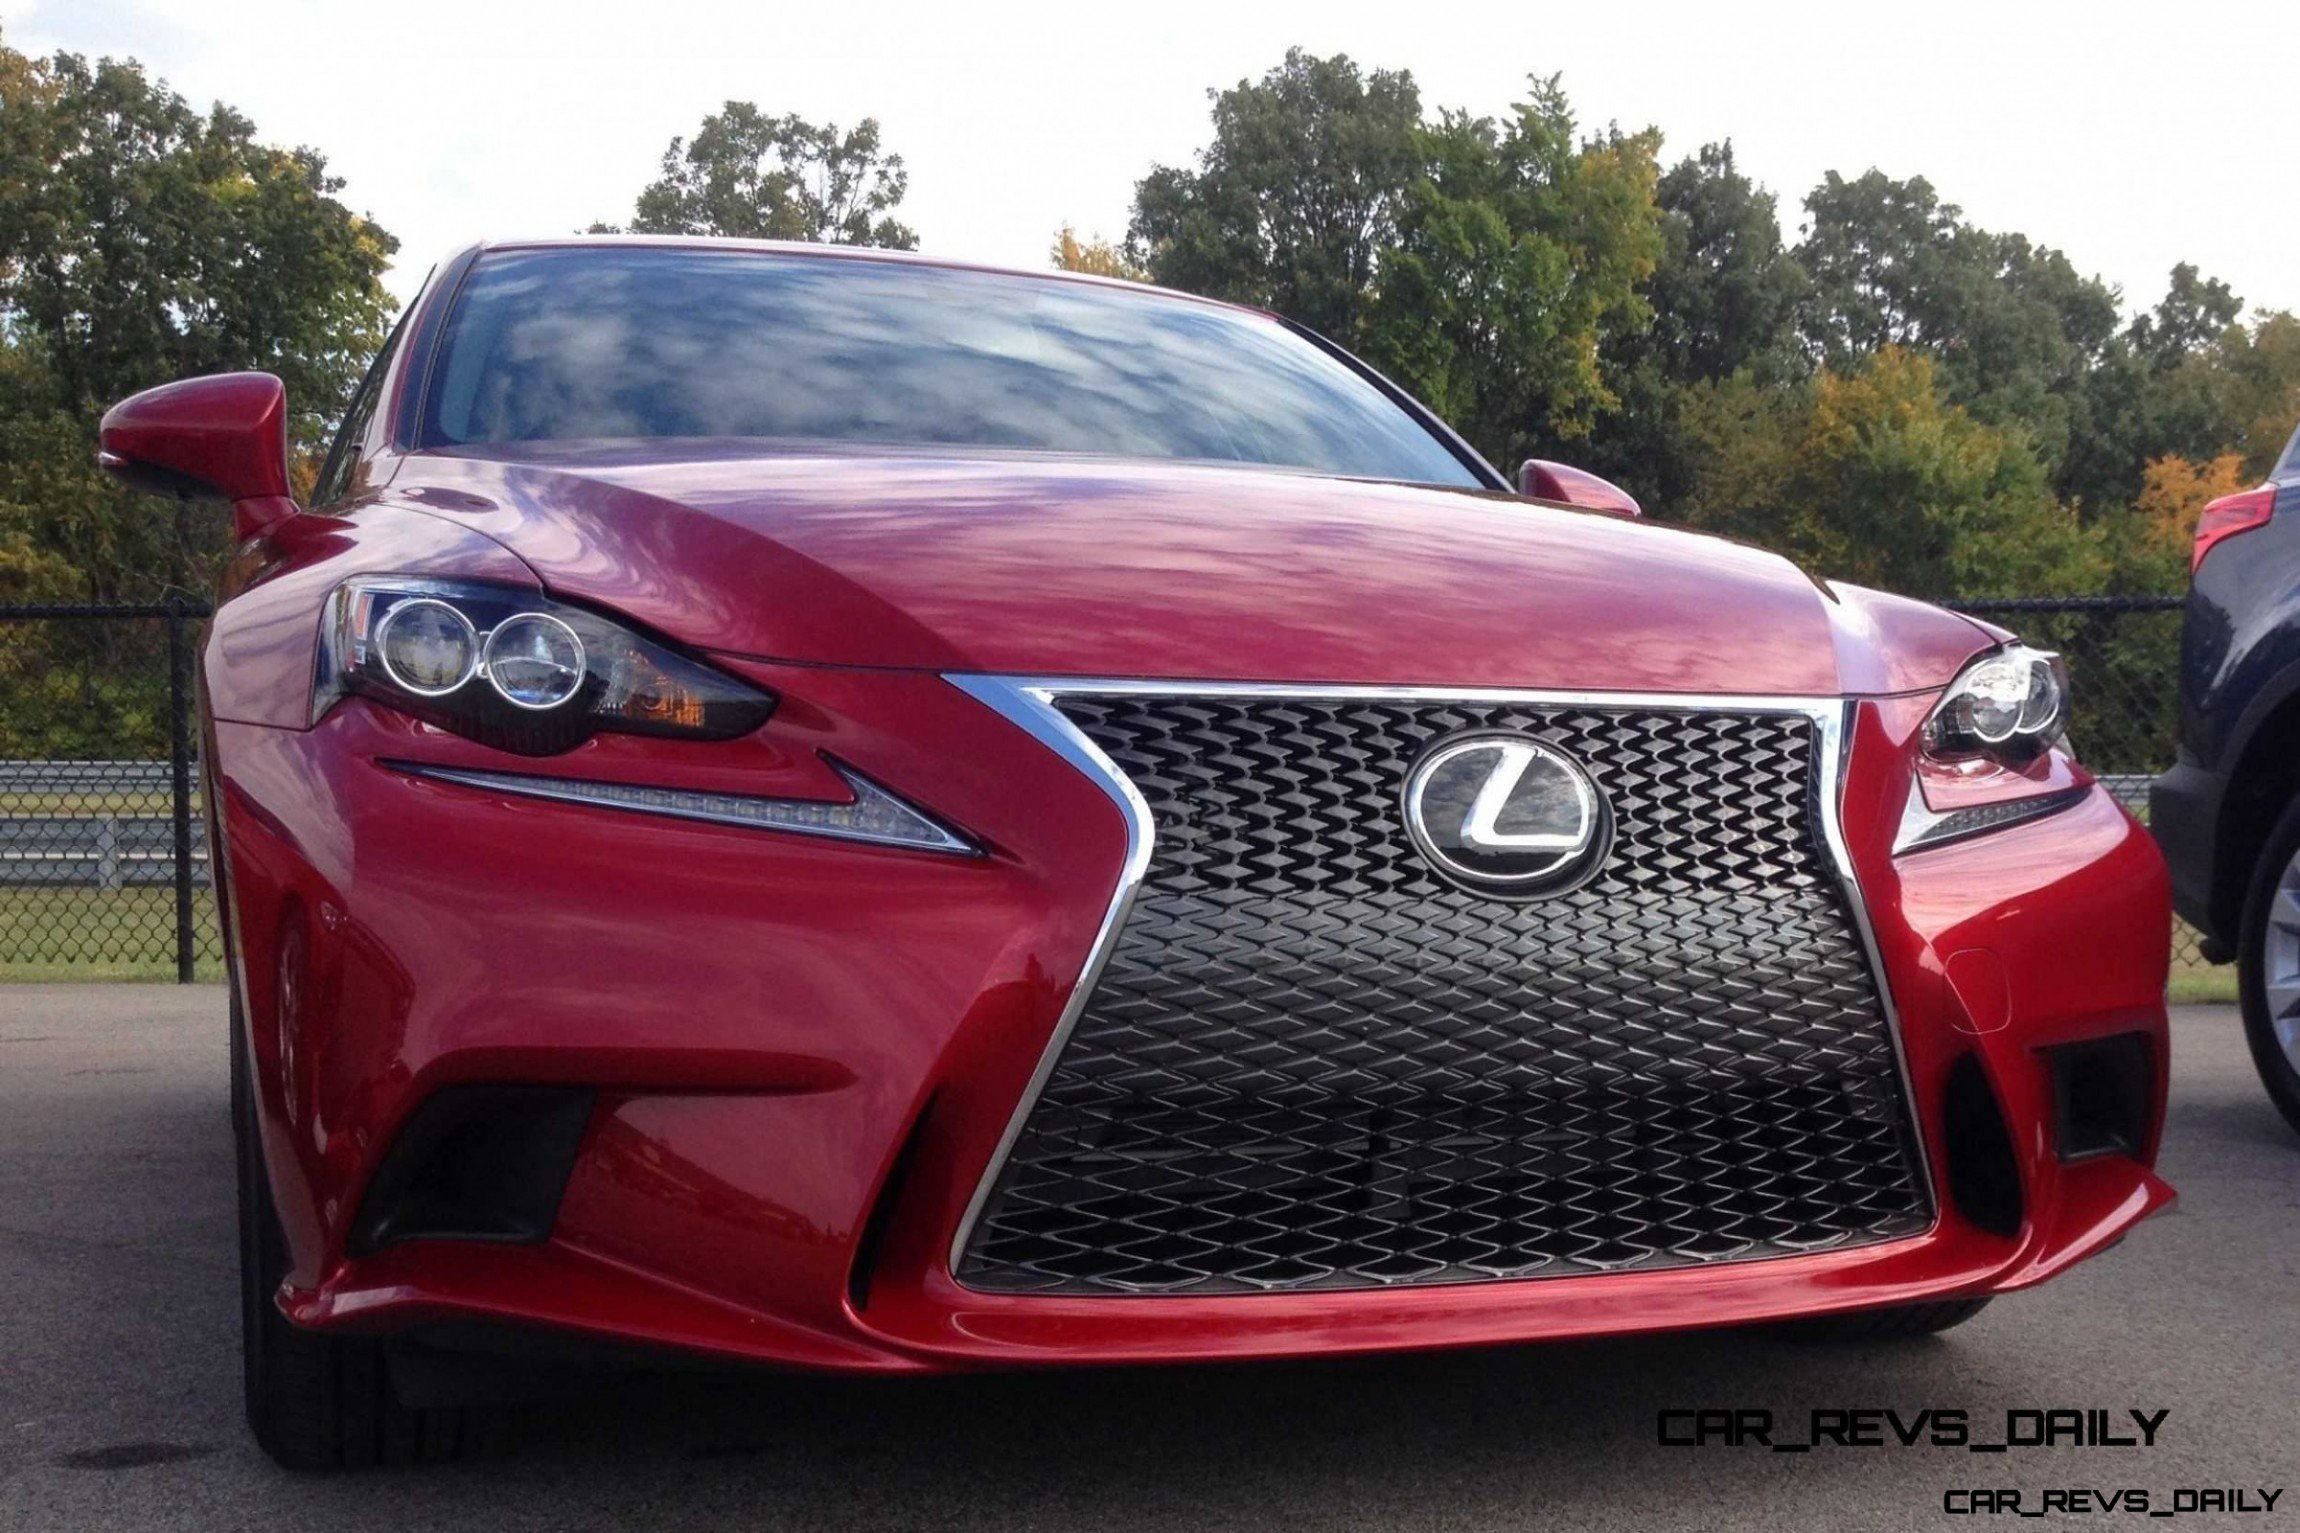 2014 Lexus IS350 AWD F Sport - First-Drive Photos